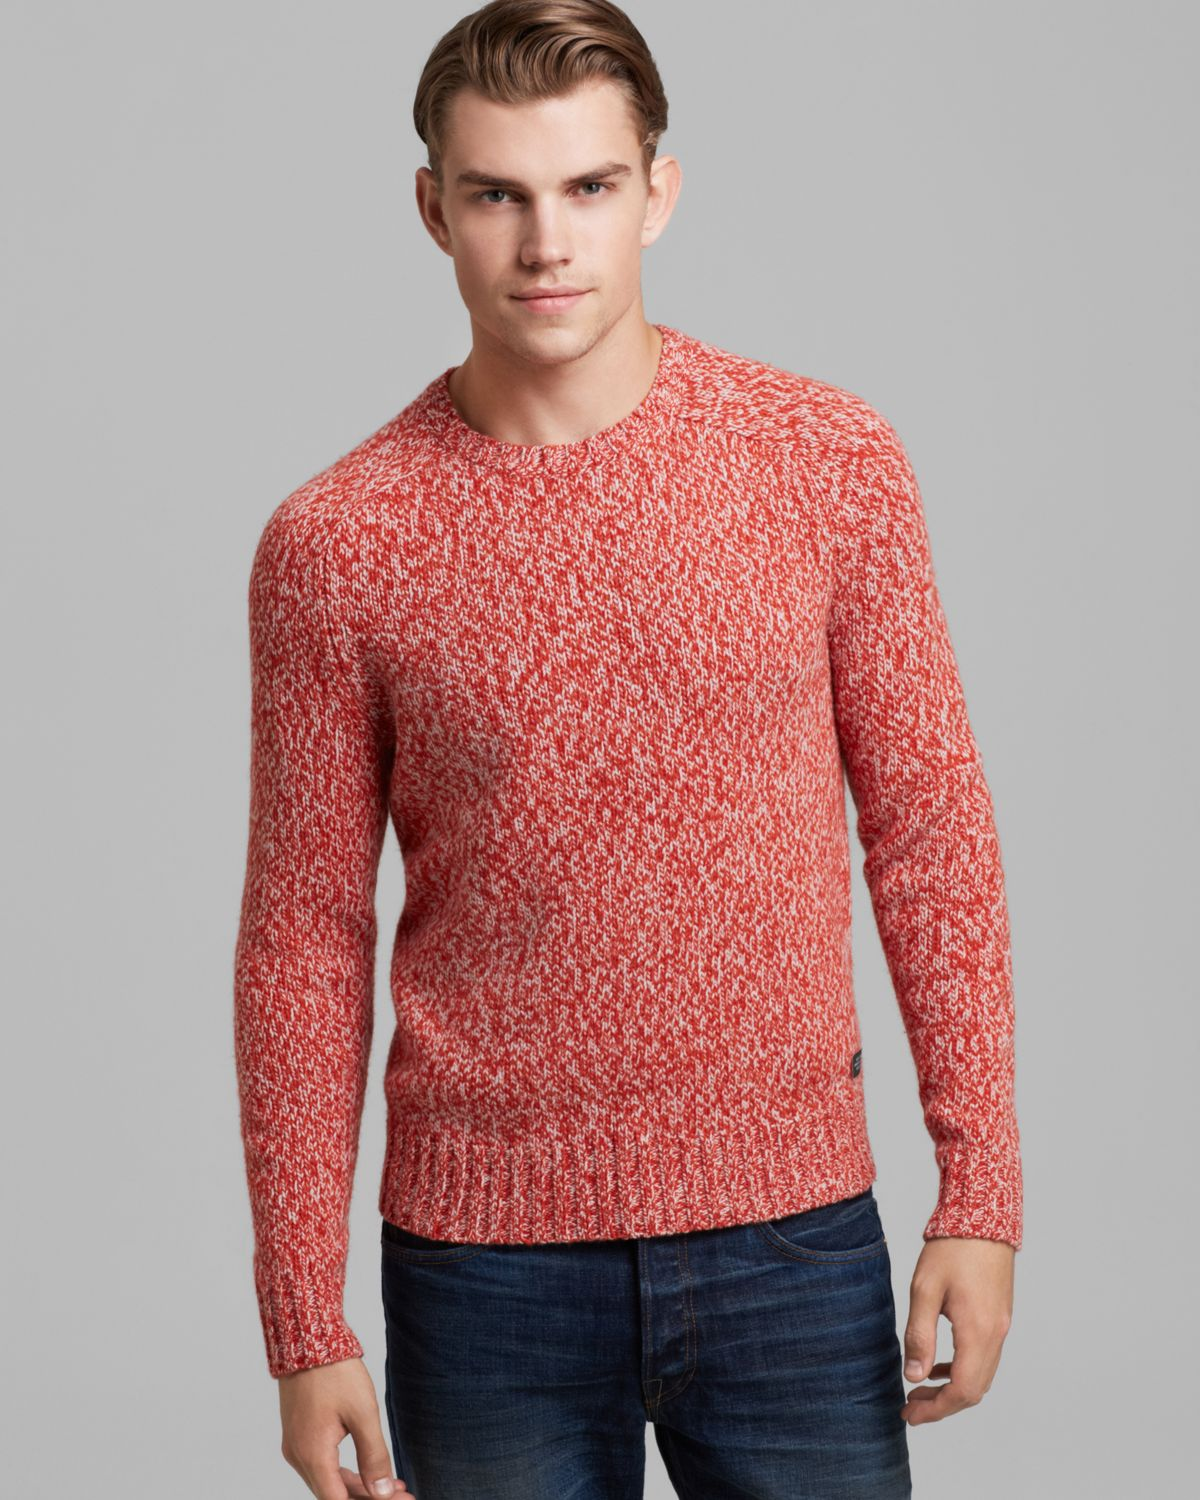 Jack spade Cameron Marled Crew Neck Sweater in Red for Men | Lyst